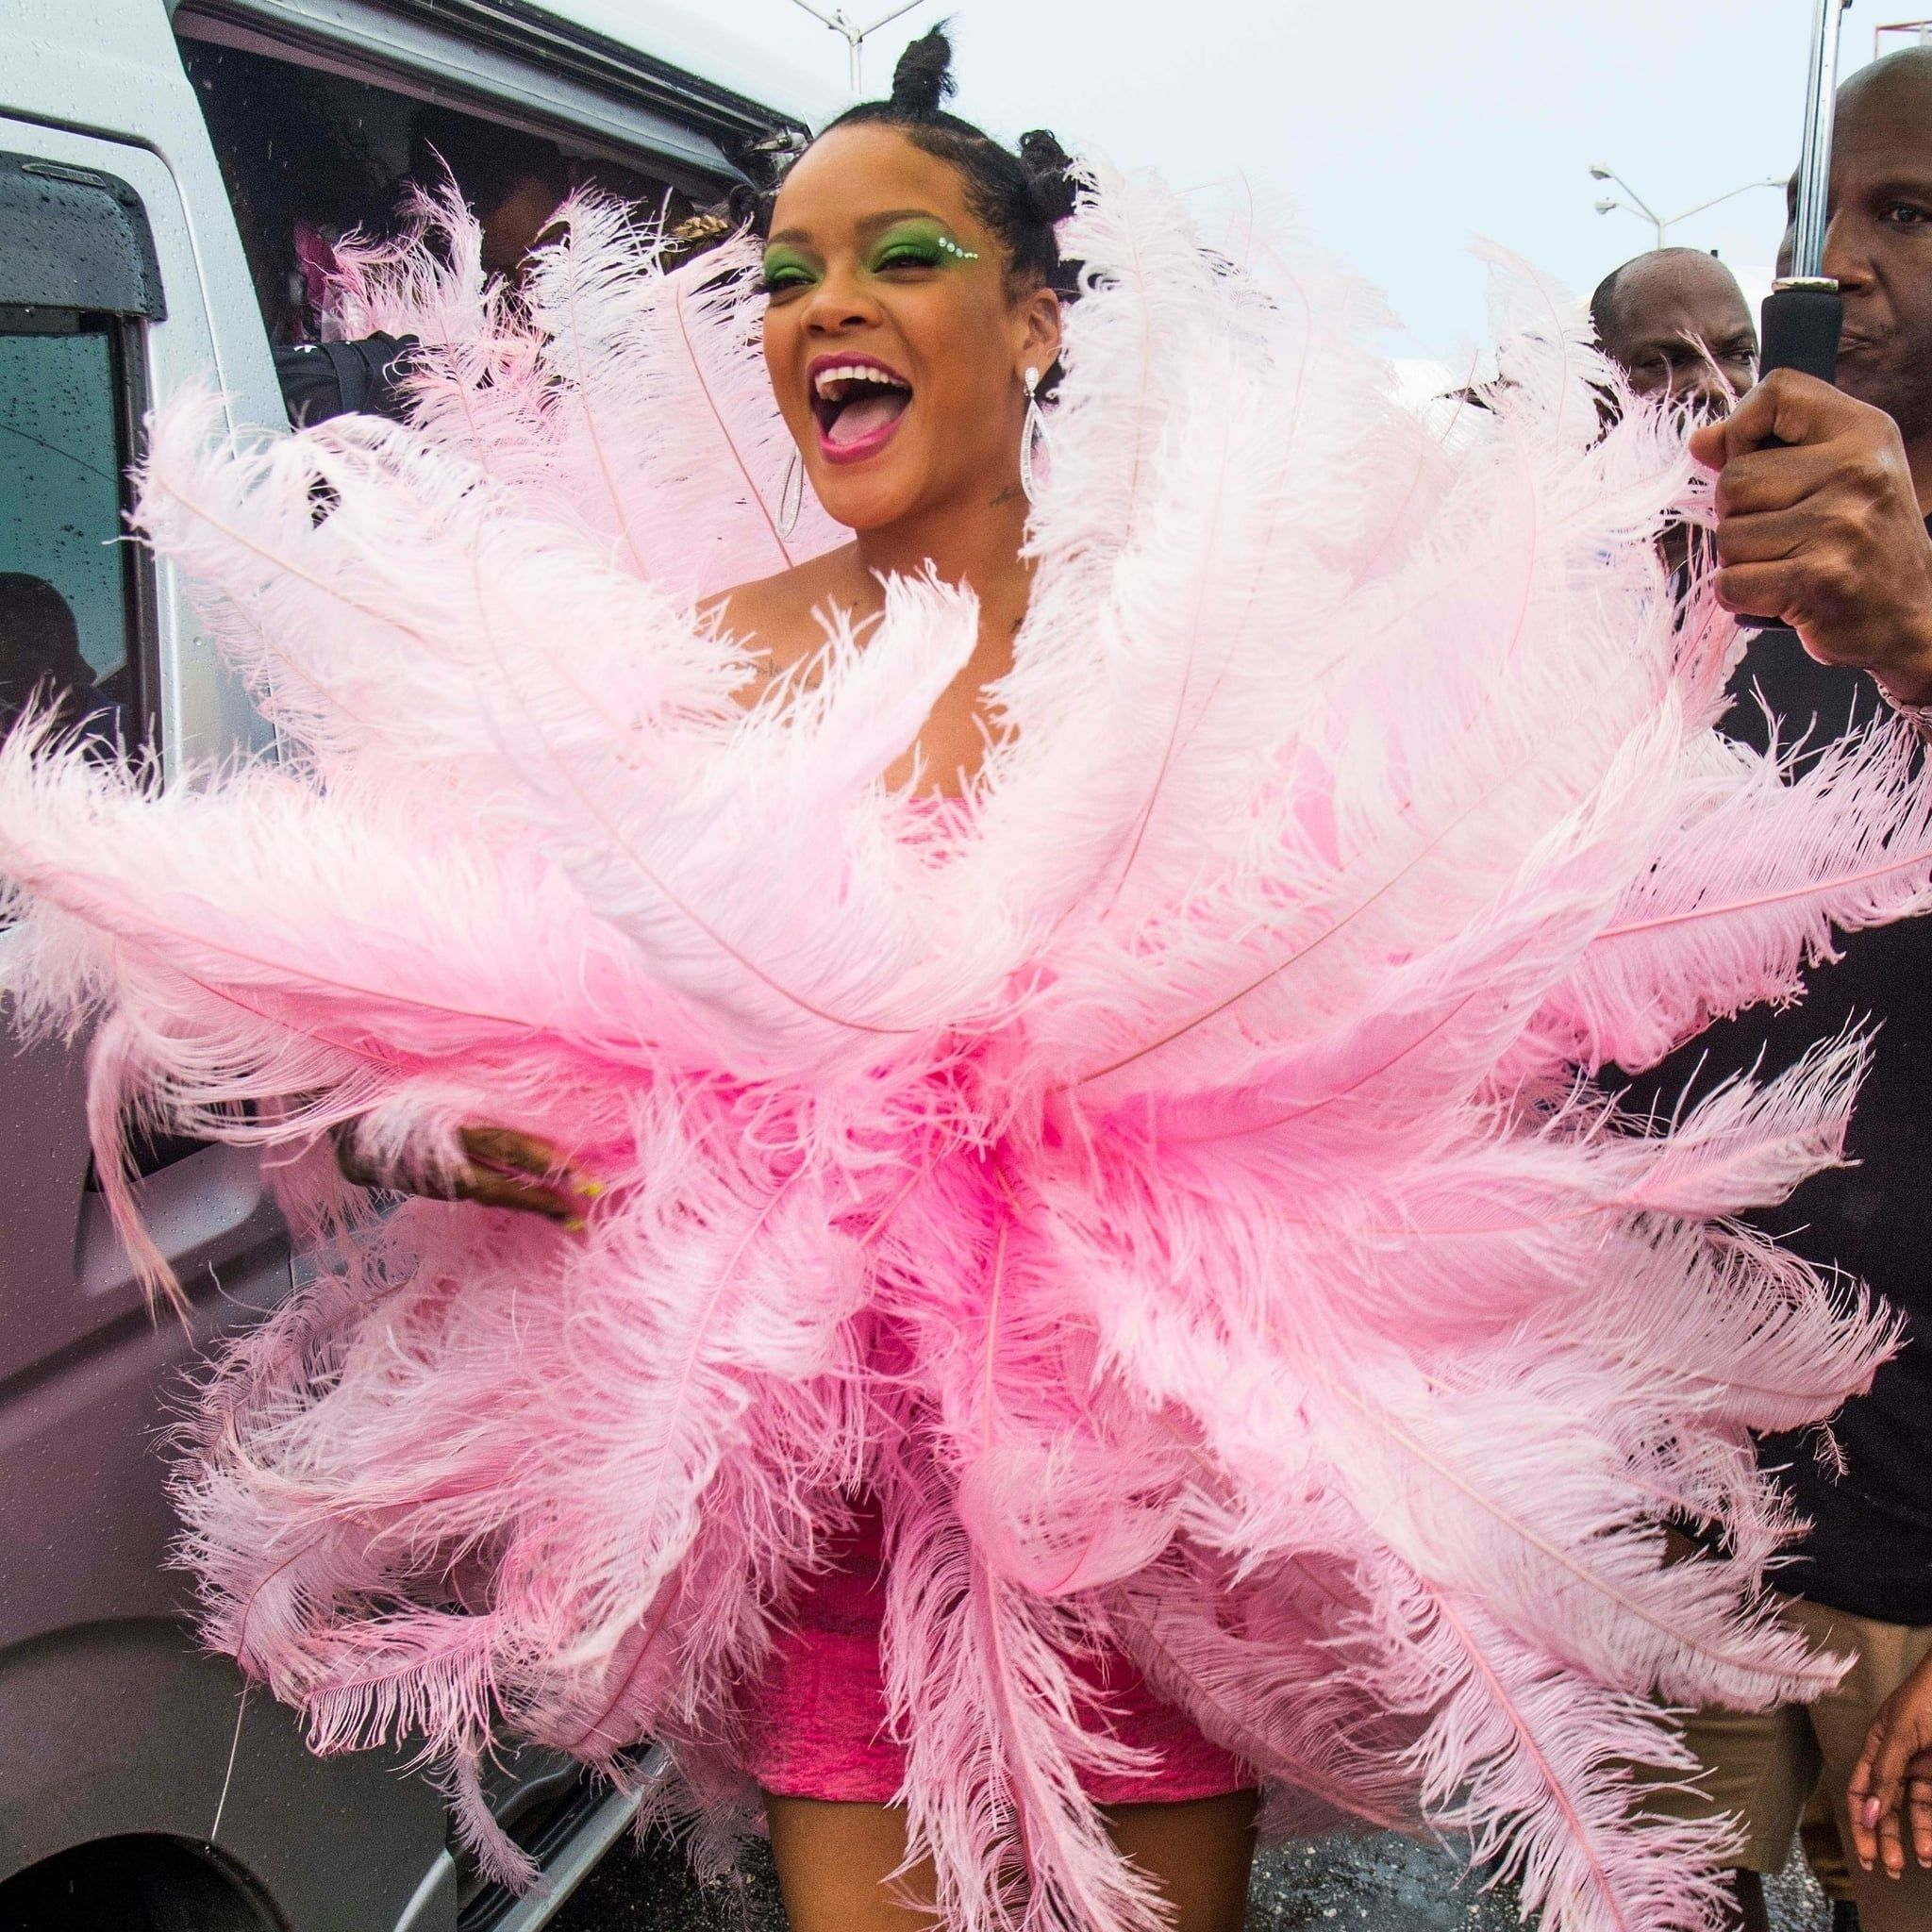 Rihanna Returns to Barbados' Carnival in a Full Flock of Feathers